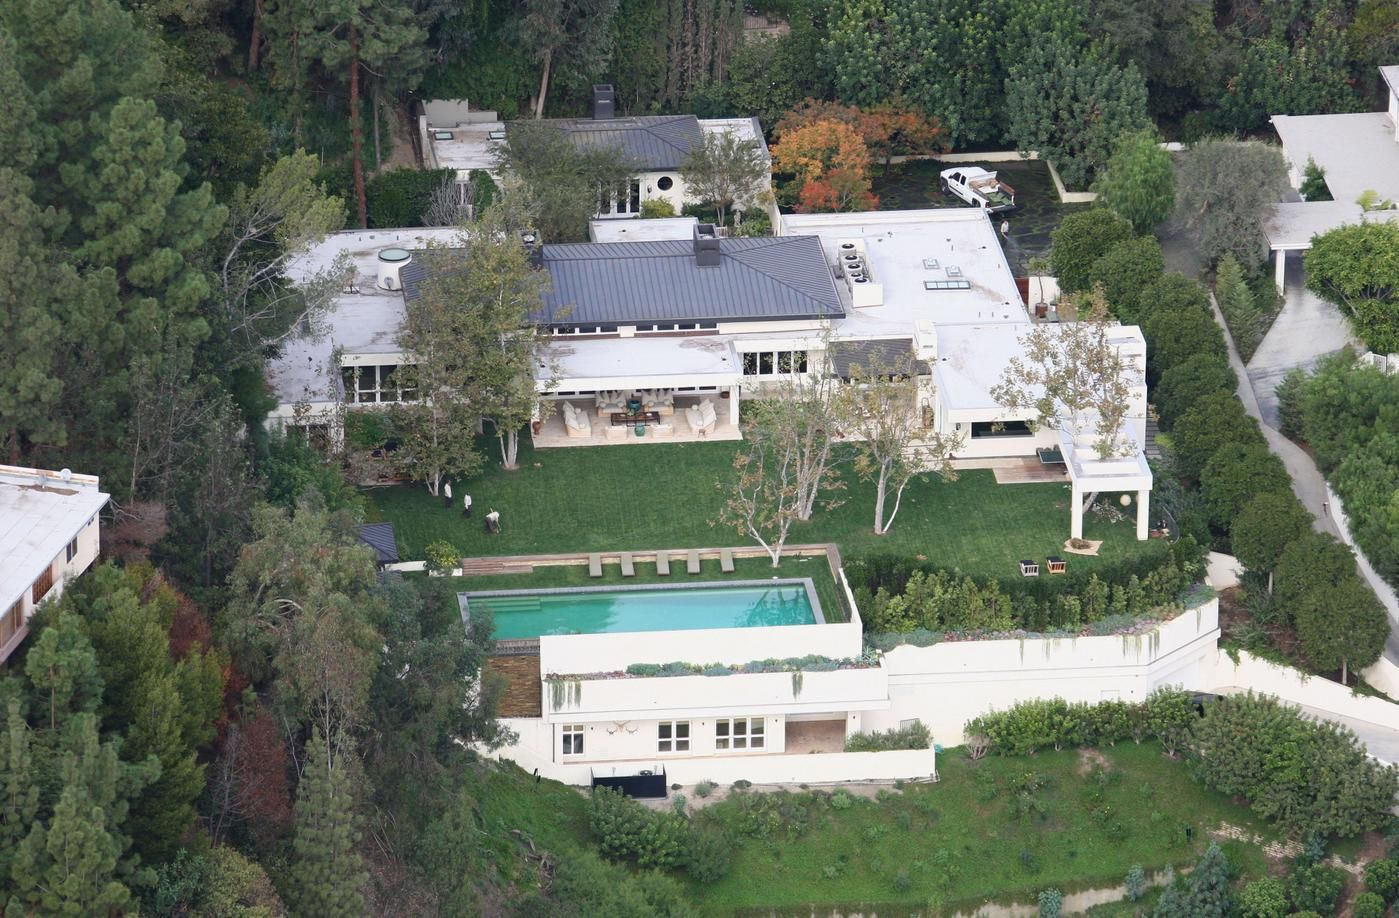 Real Estate Porn: Steve Martin's Caribbean Mansion and a Brazilian BachelorPad